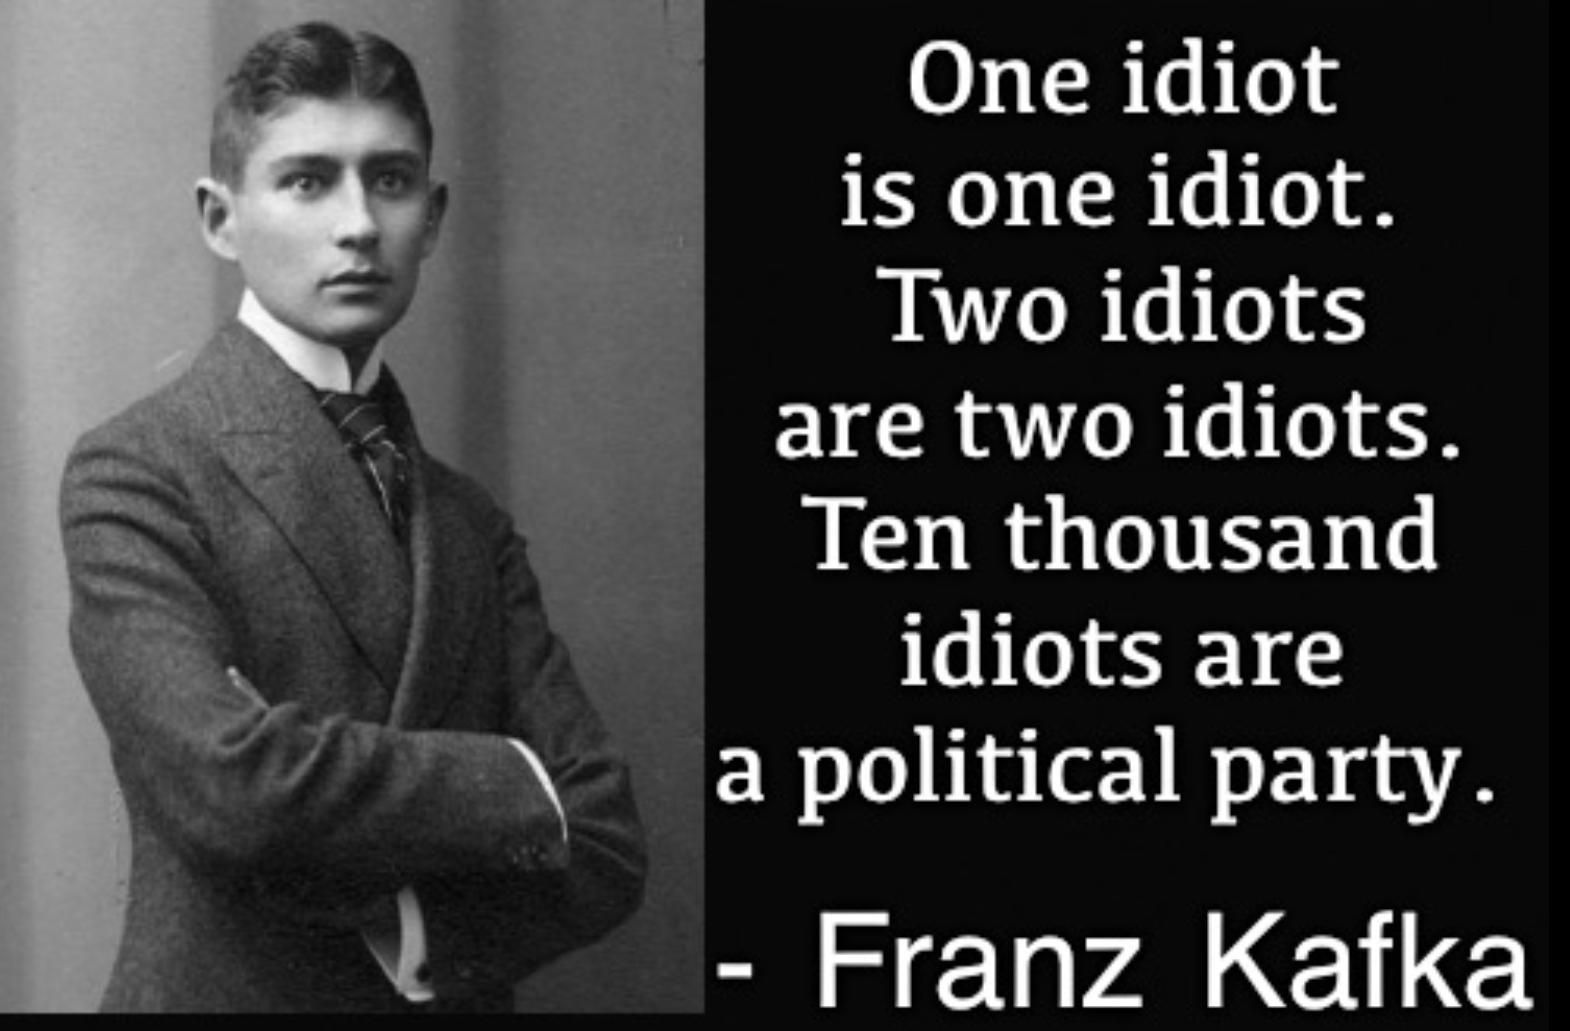 """Ten thousand idiots are a political party."" – Franz Kafka [1570 x 1031]"